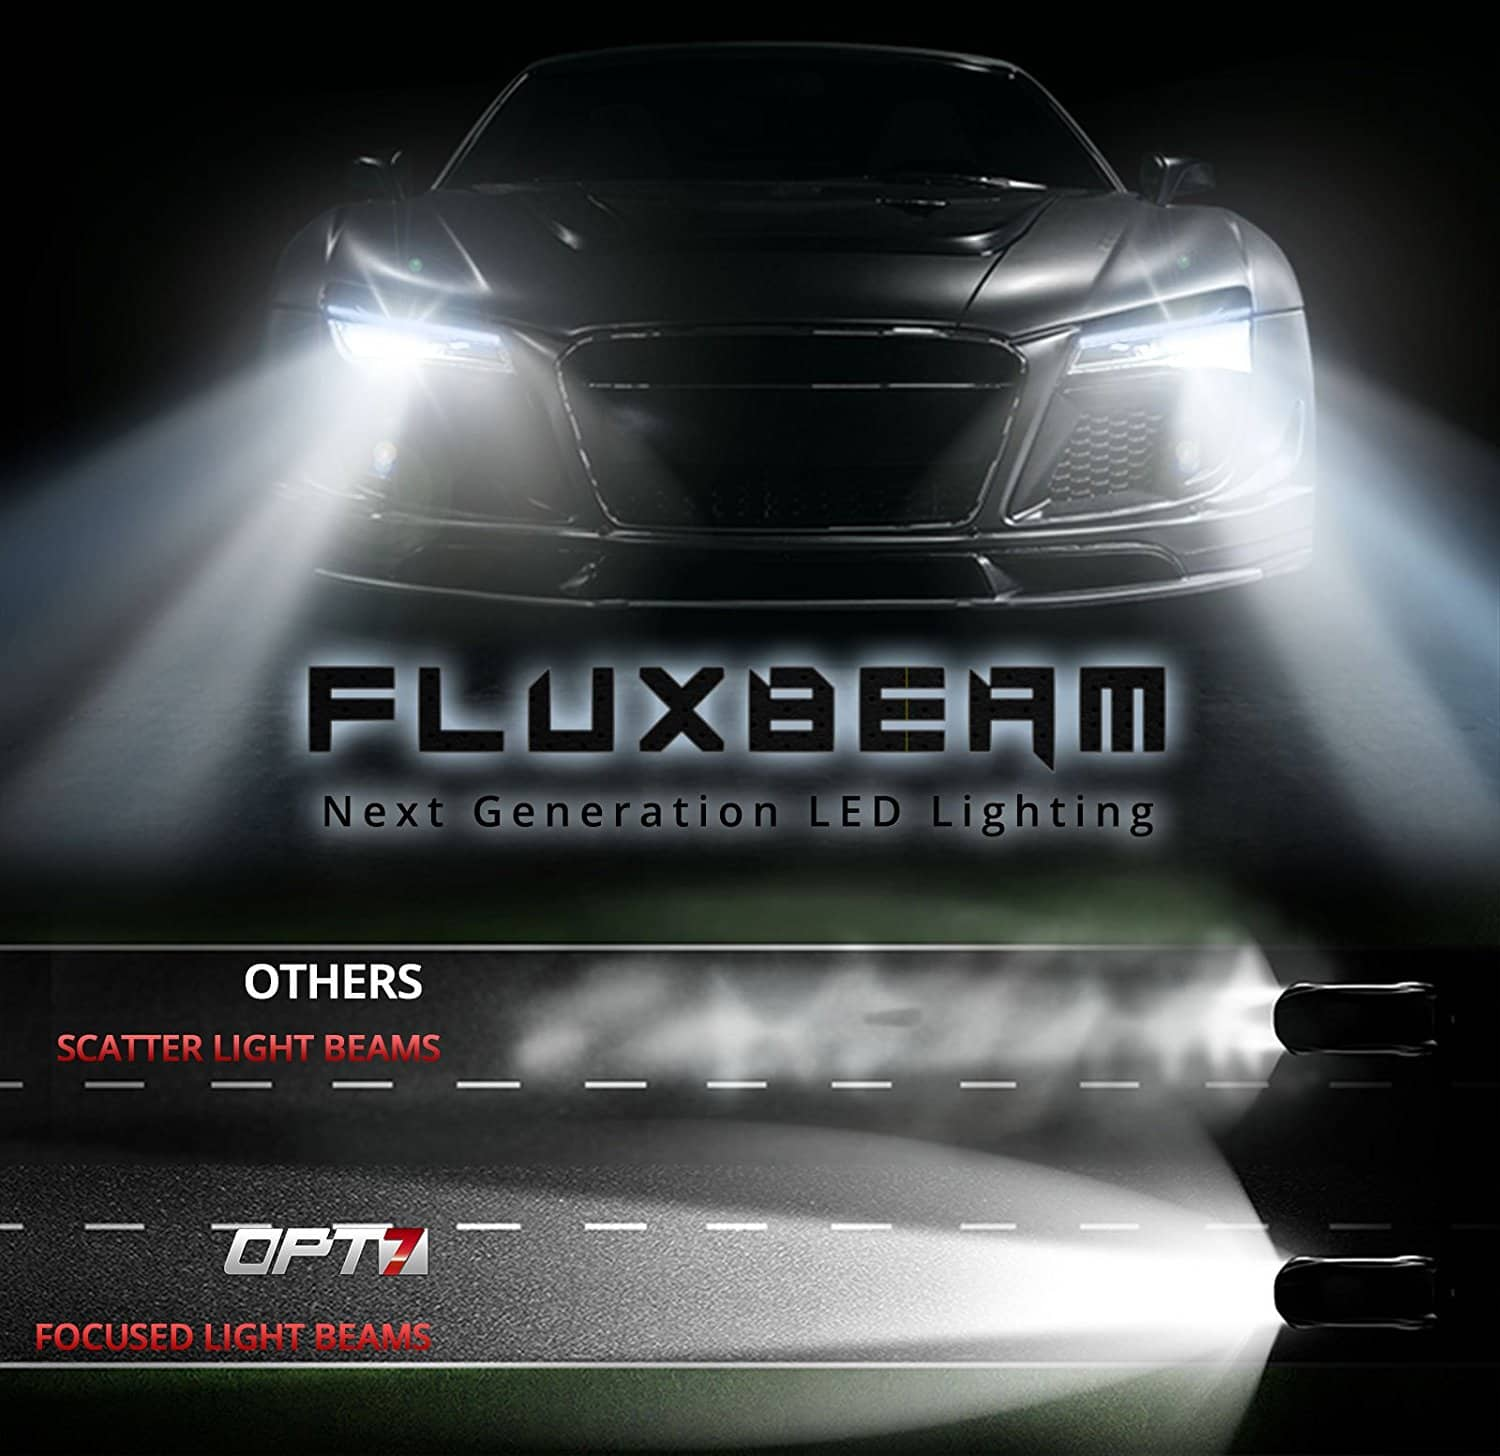 opt7 fluxbeam led headlight